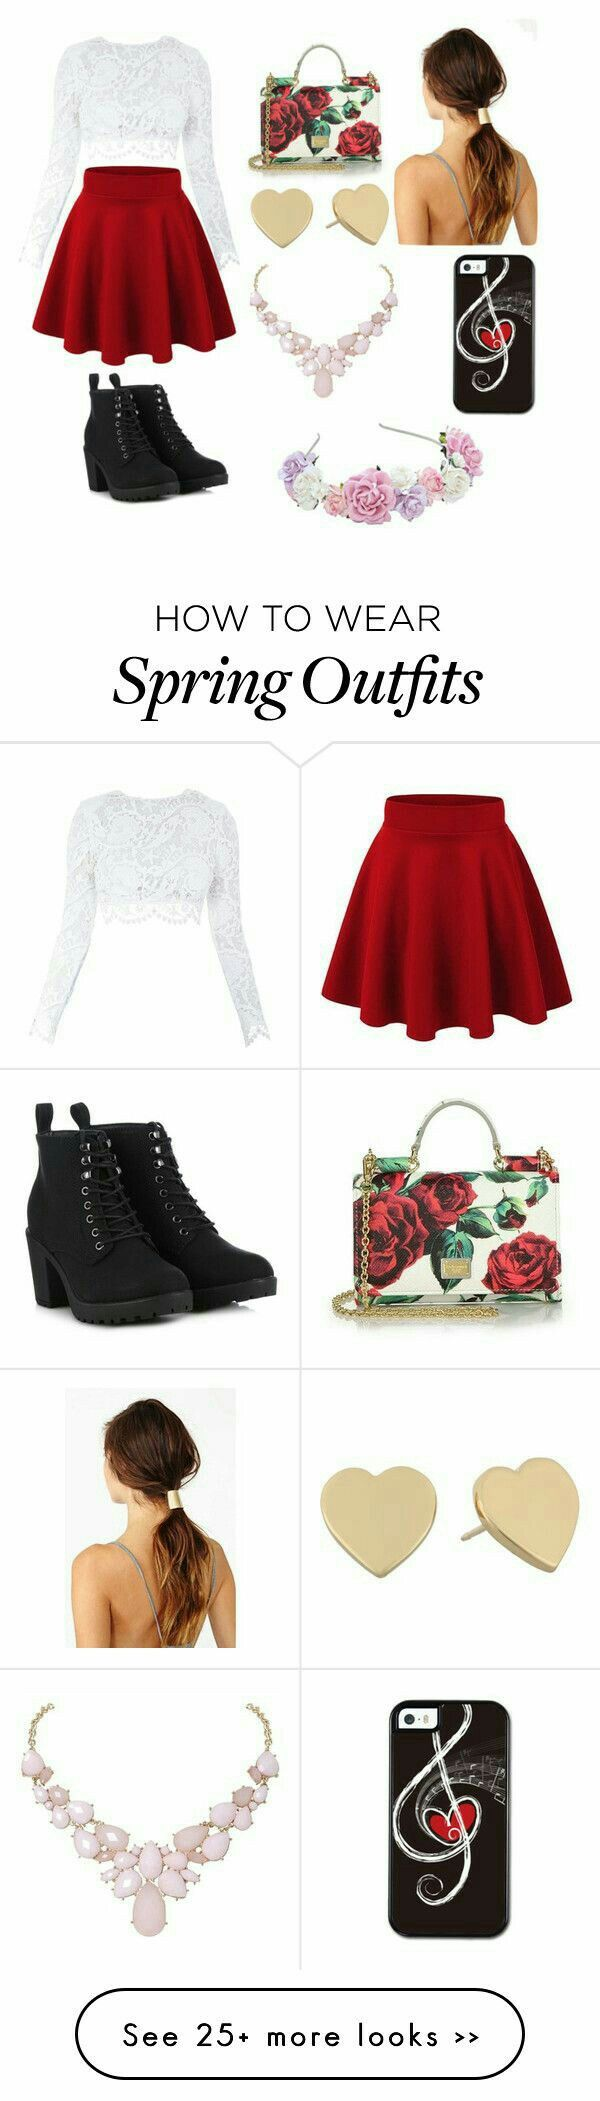 best favo outfits uc images on pinterest casual wear cute